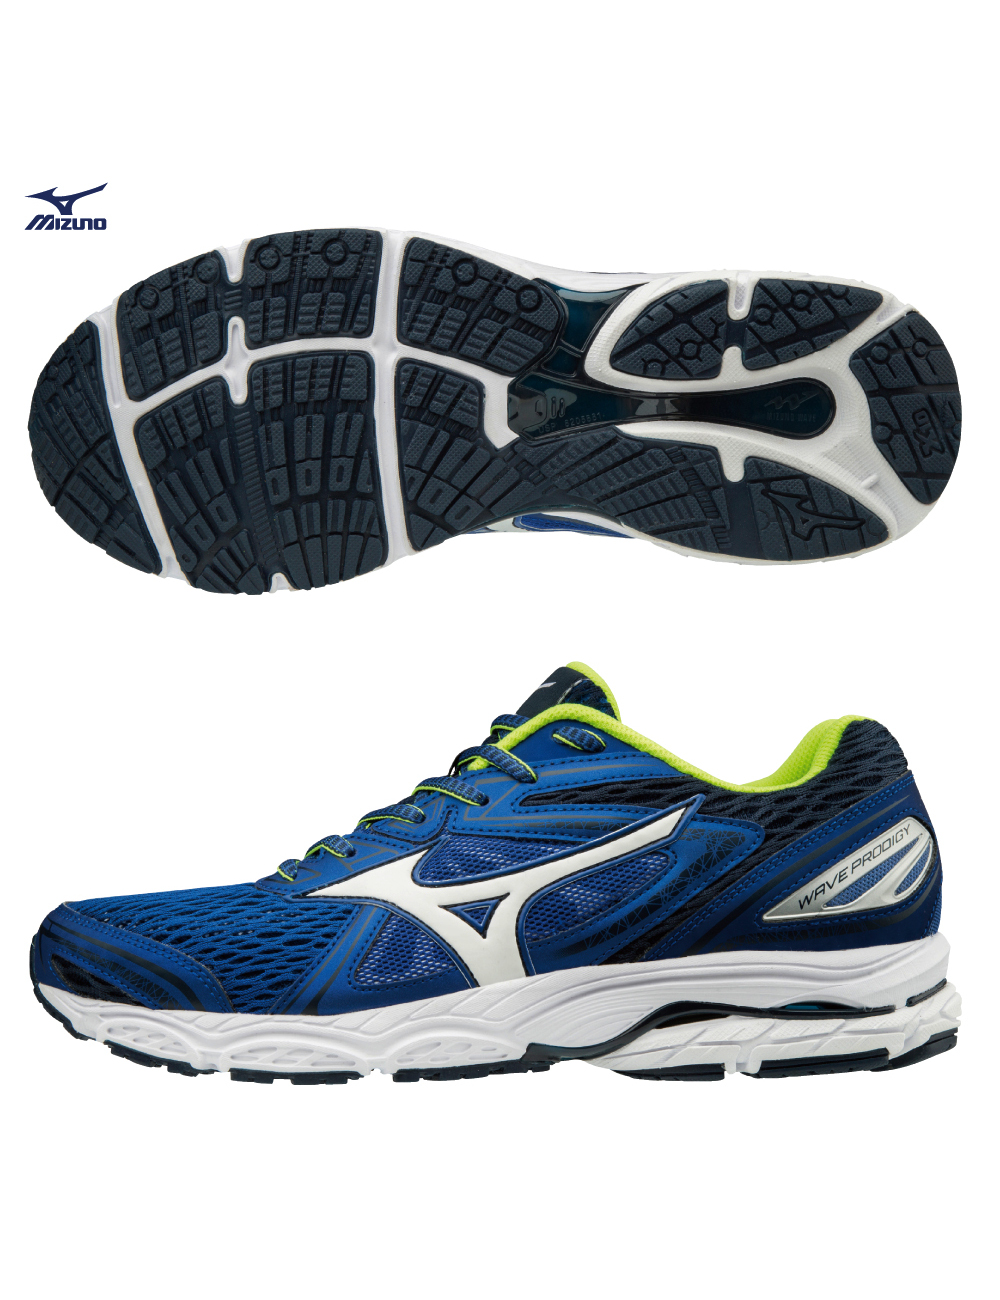 save off bffd9 8b647 Mizuno Chaussures De Course Running Baskets Formateurs Formateurs Formateurs  Wave Prodigy 271c9a